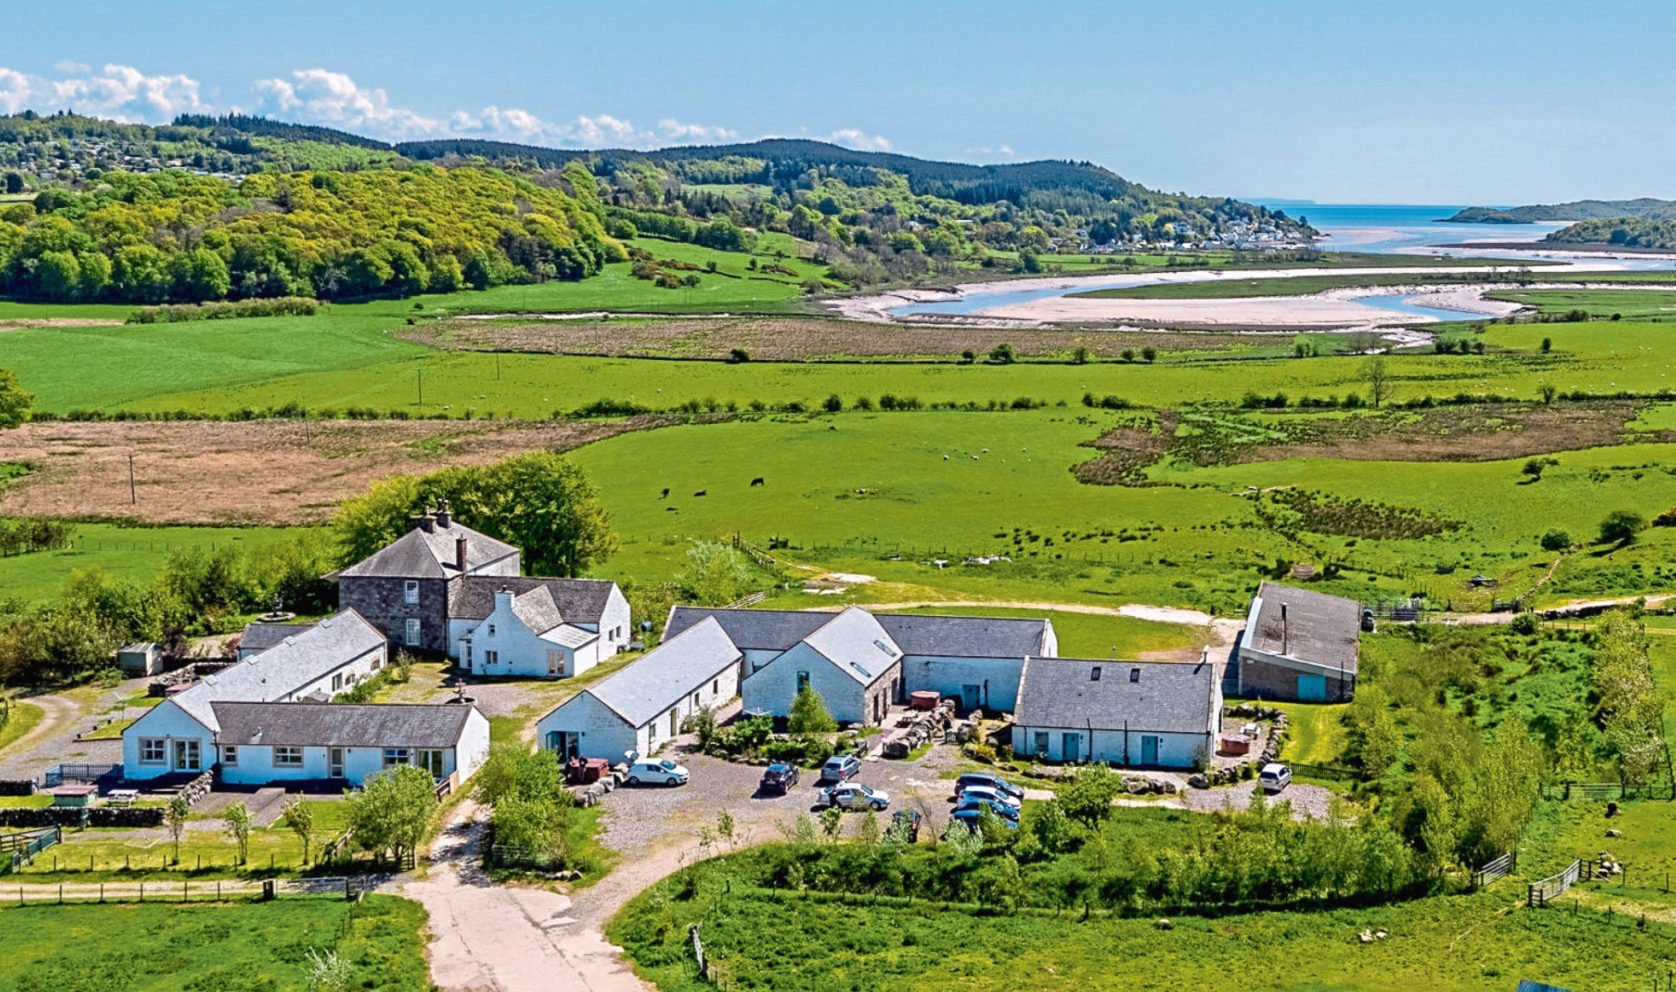 Meikle Richorn Farm and Holiday Cottages extends to 238 acres and is on the market for £3.5 million.